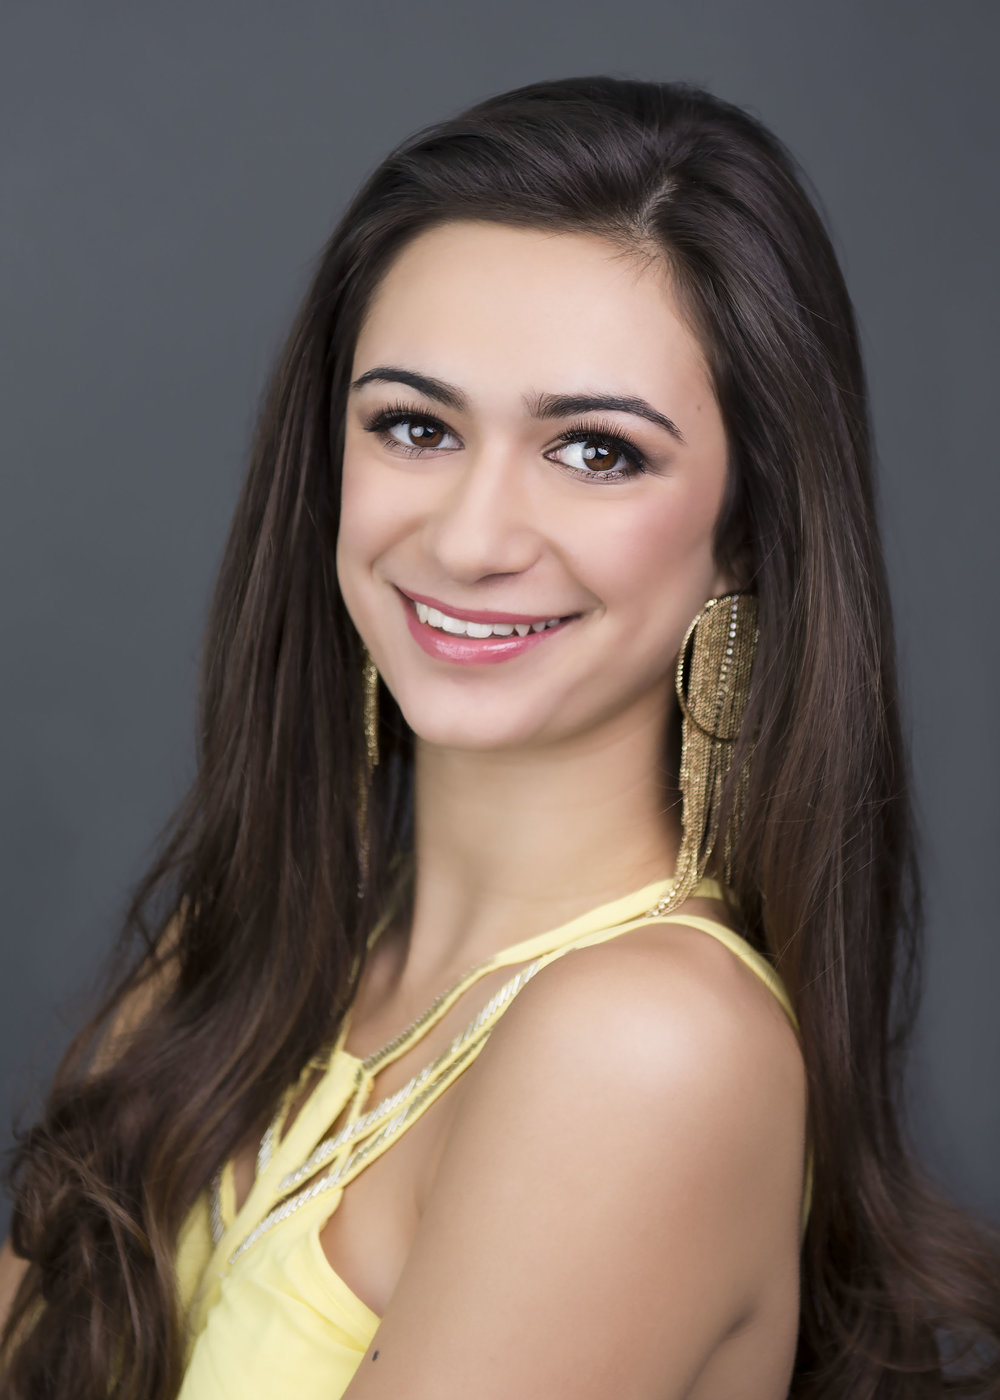 MARIALENA MOUAIKEL Thousand Island's Outstanding Teen Talent:  Jazz Dance Platform: The Dangers of Distracted Driving